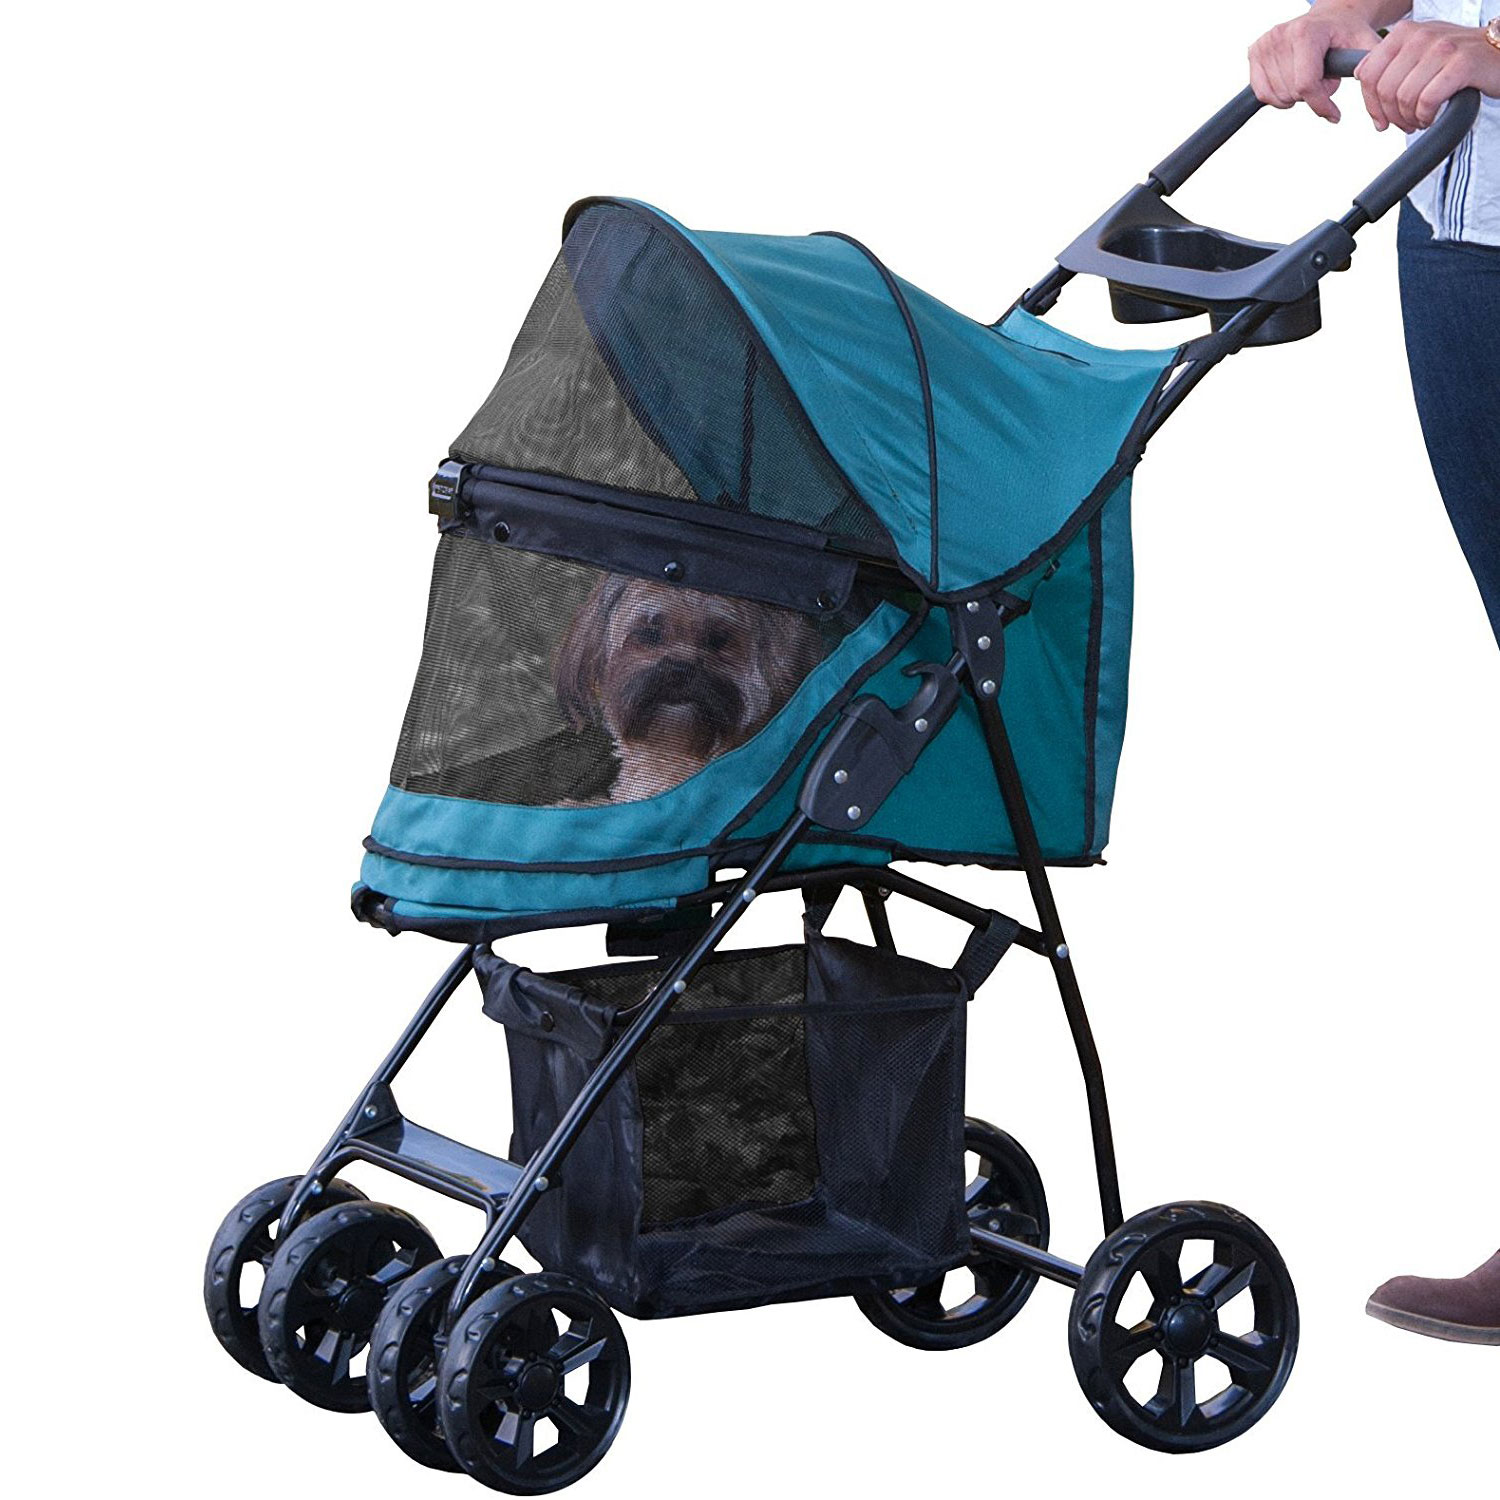 Pet Gear Happy Trails Lite No Zip Small Dog Stroller up to 25 Pounds, Pine Green